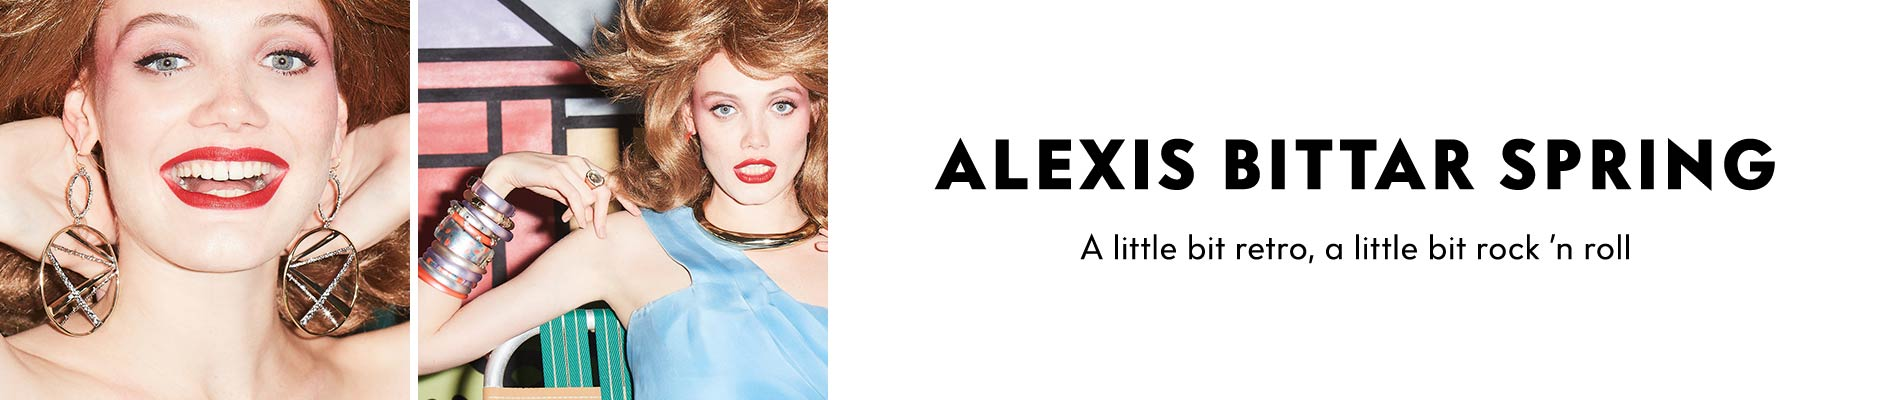 Alexis Bittar Spring - A little bit retro, a little bit rock 'n roll